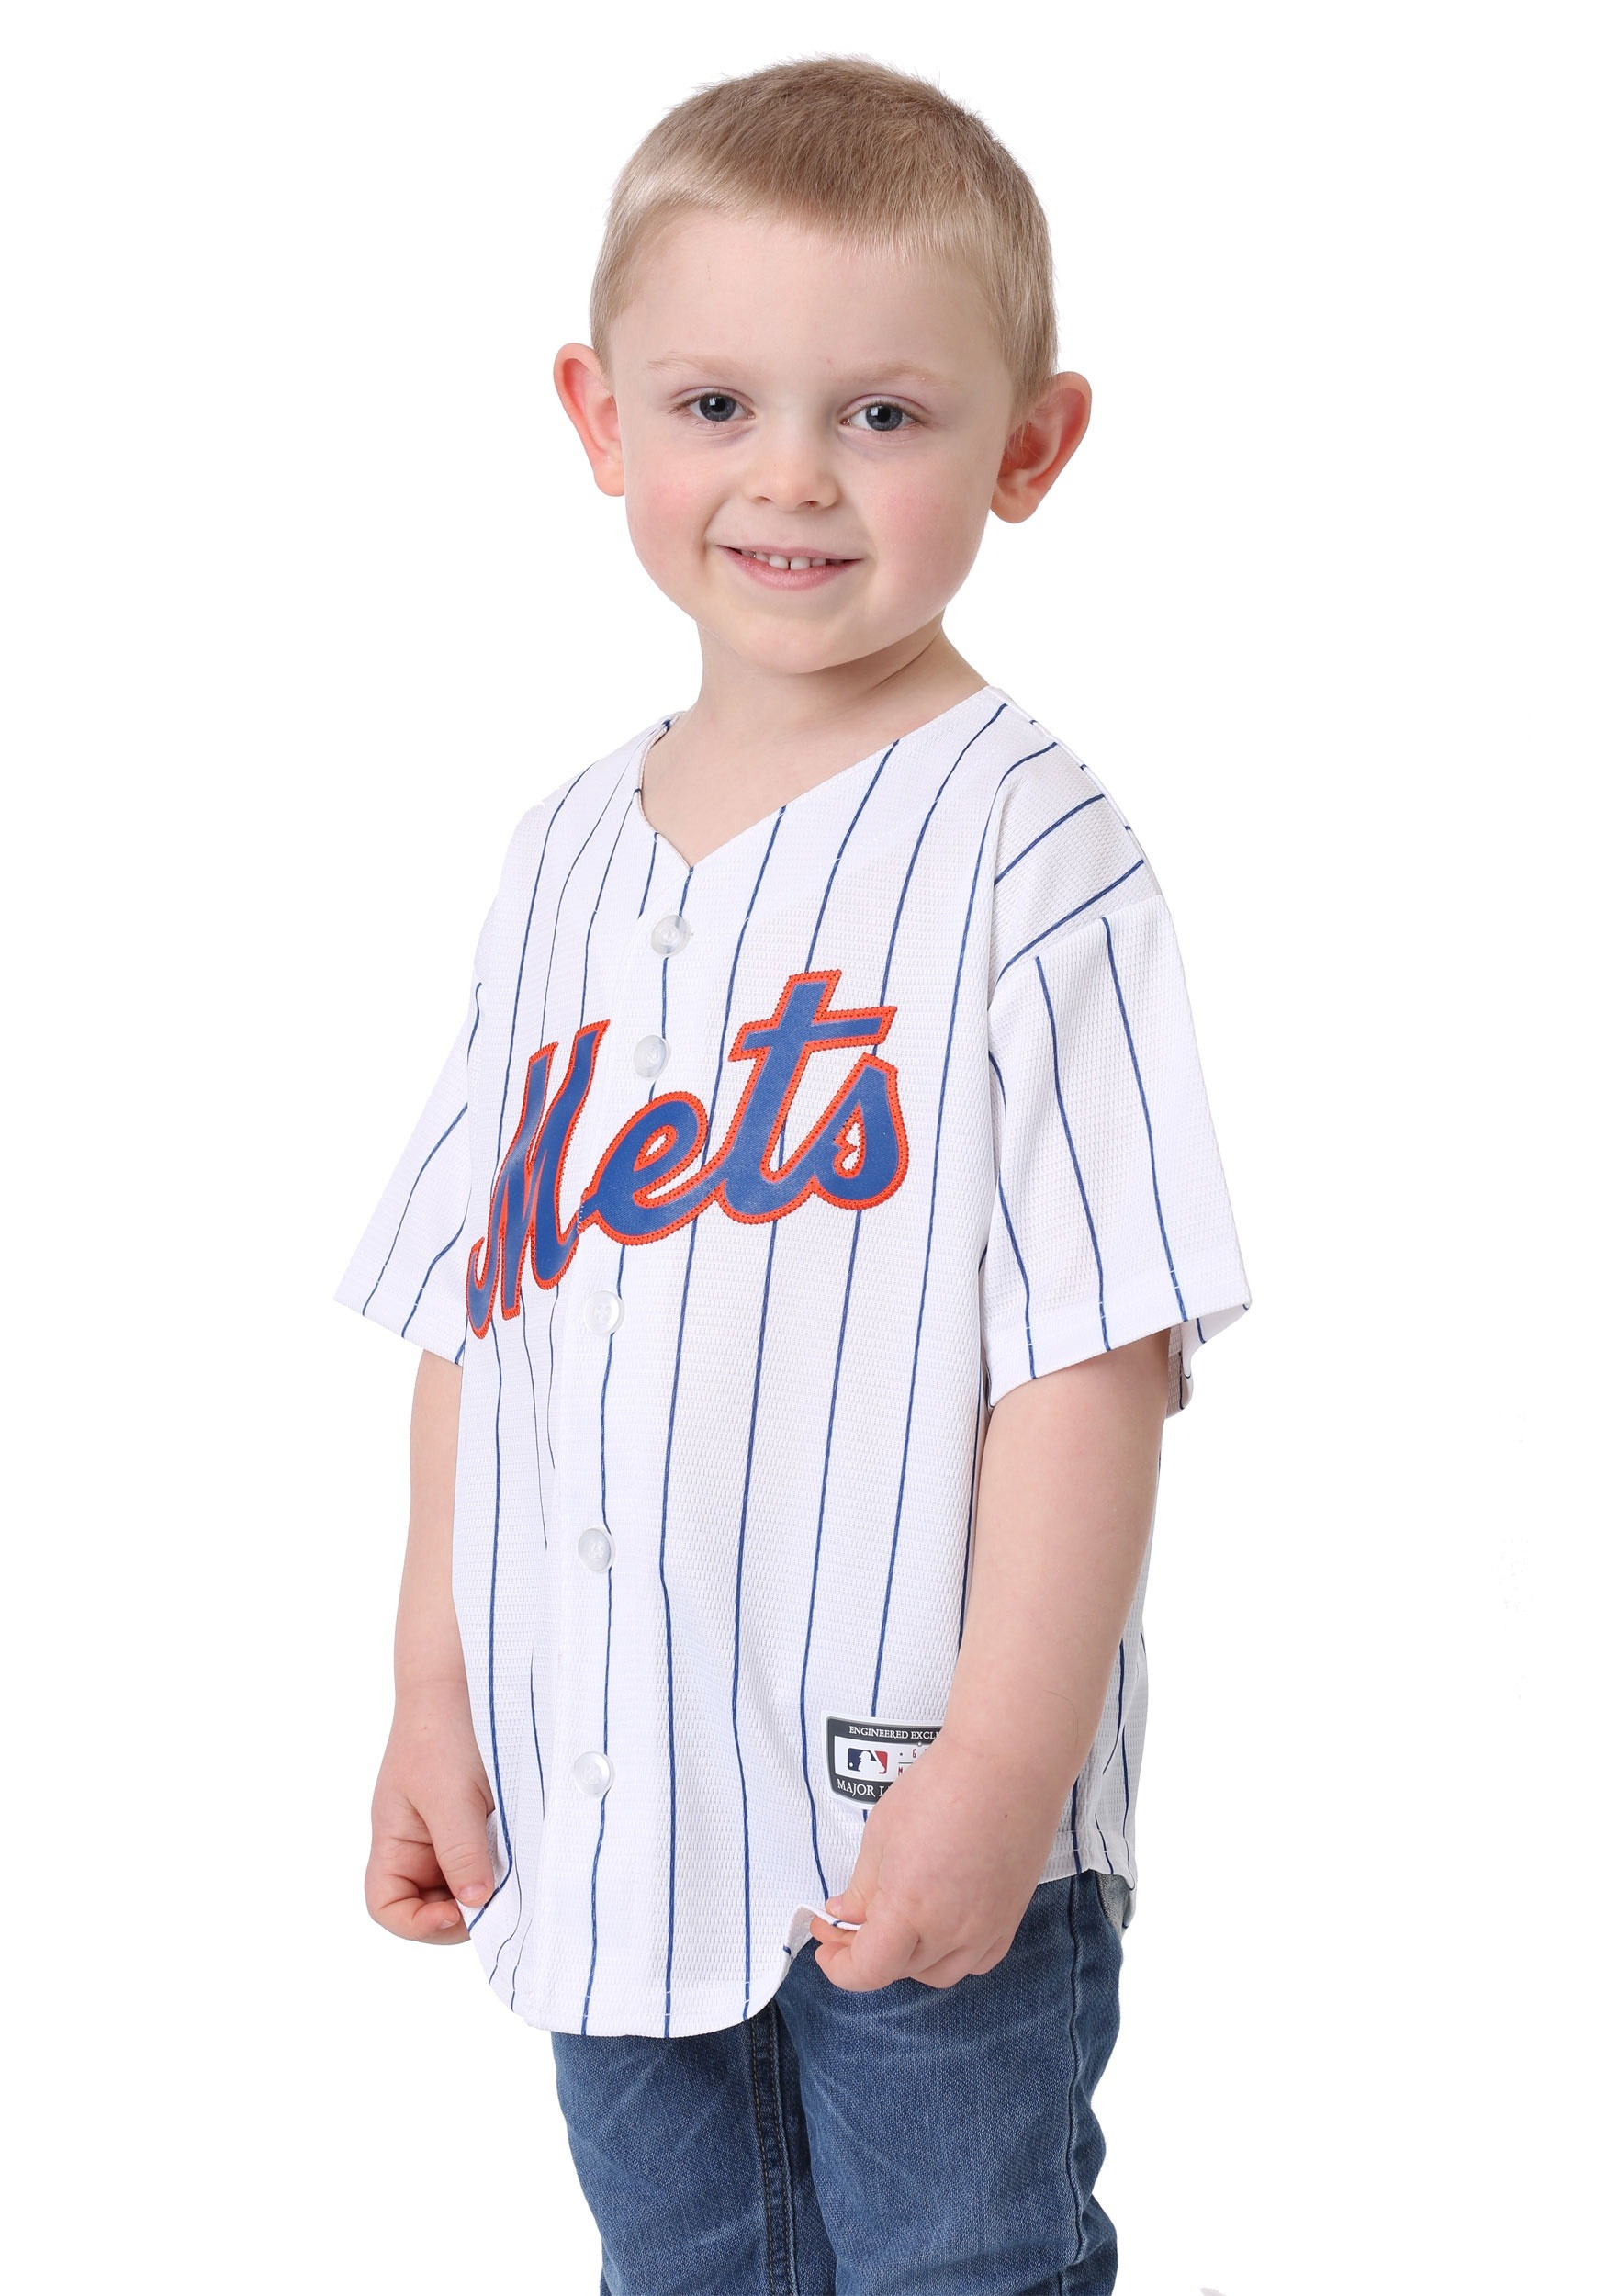 reputable site 0a8e6 24333 New York Mets Home Replica Blank Back Child Jersey